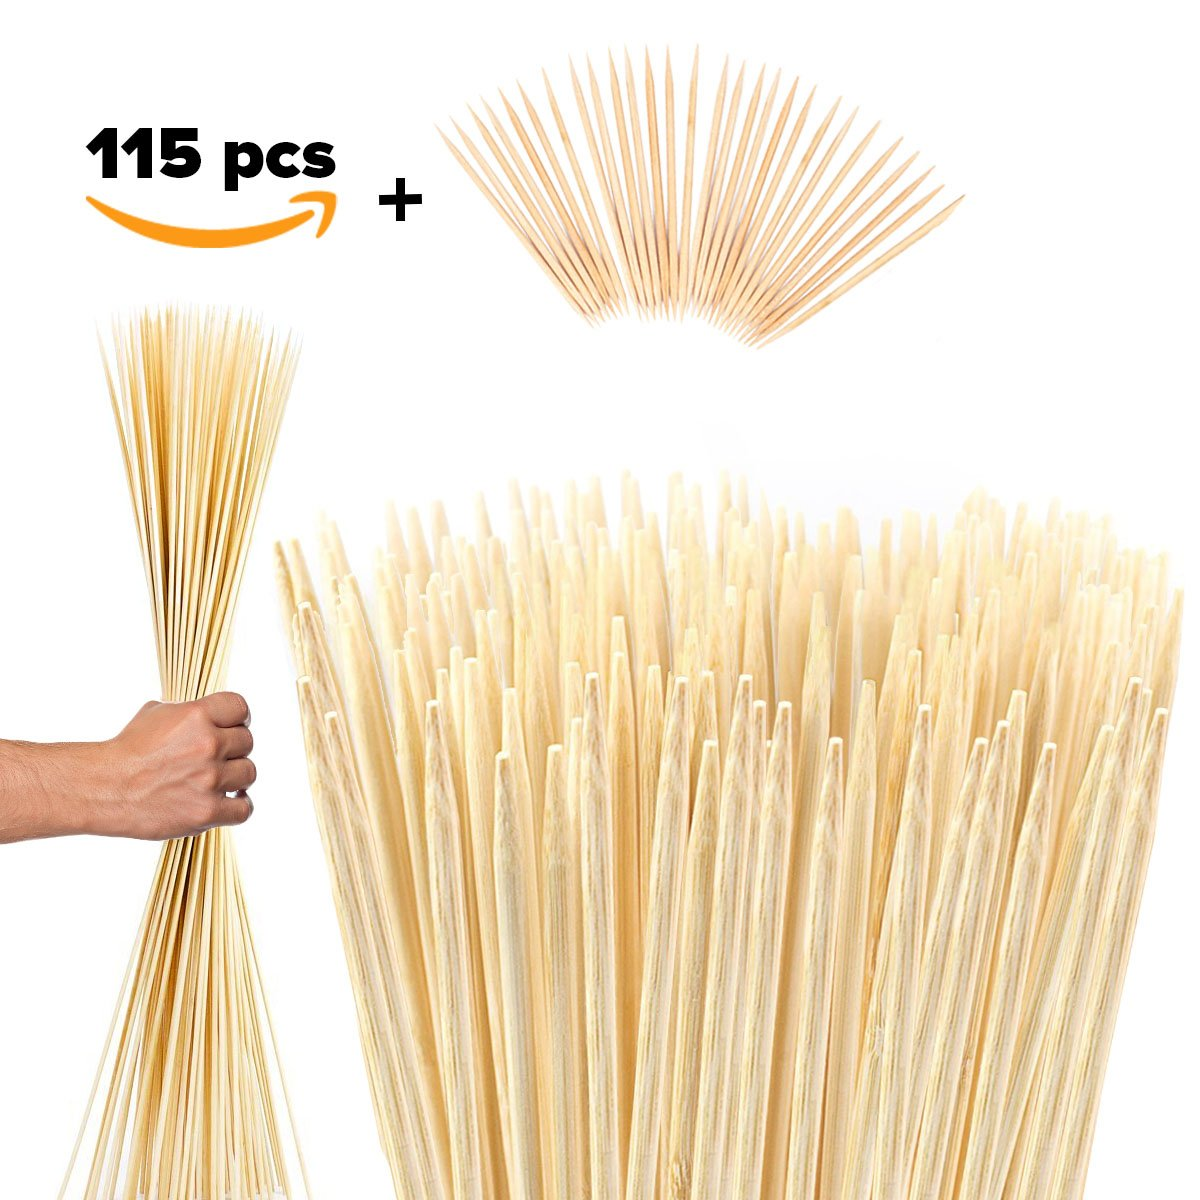 Bamboo Marshmallow Roasting Sticks Kebab Barbecue Skewers 115 Pieces 36 Inch Long 6mm Extra Thick Heavy Duty Wooden Environmentally Safe 100% Biodegradable S'mores Sticks Bonus Included Outdoor Fun by G&K WORLD Bamboo Sticks